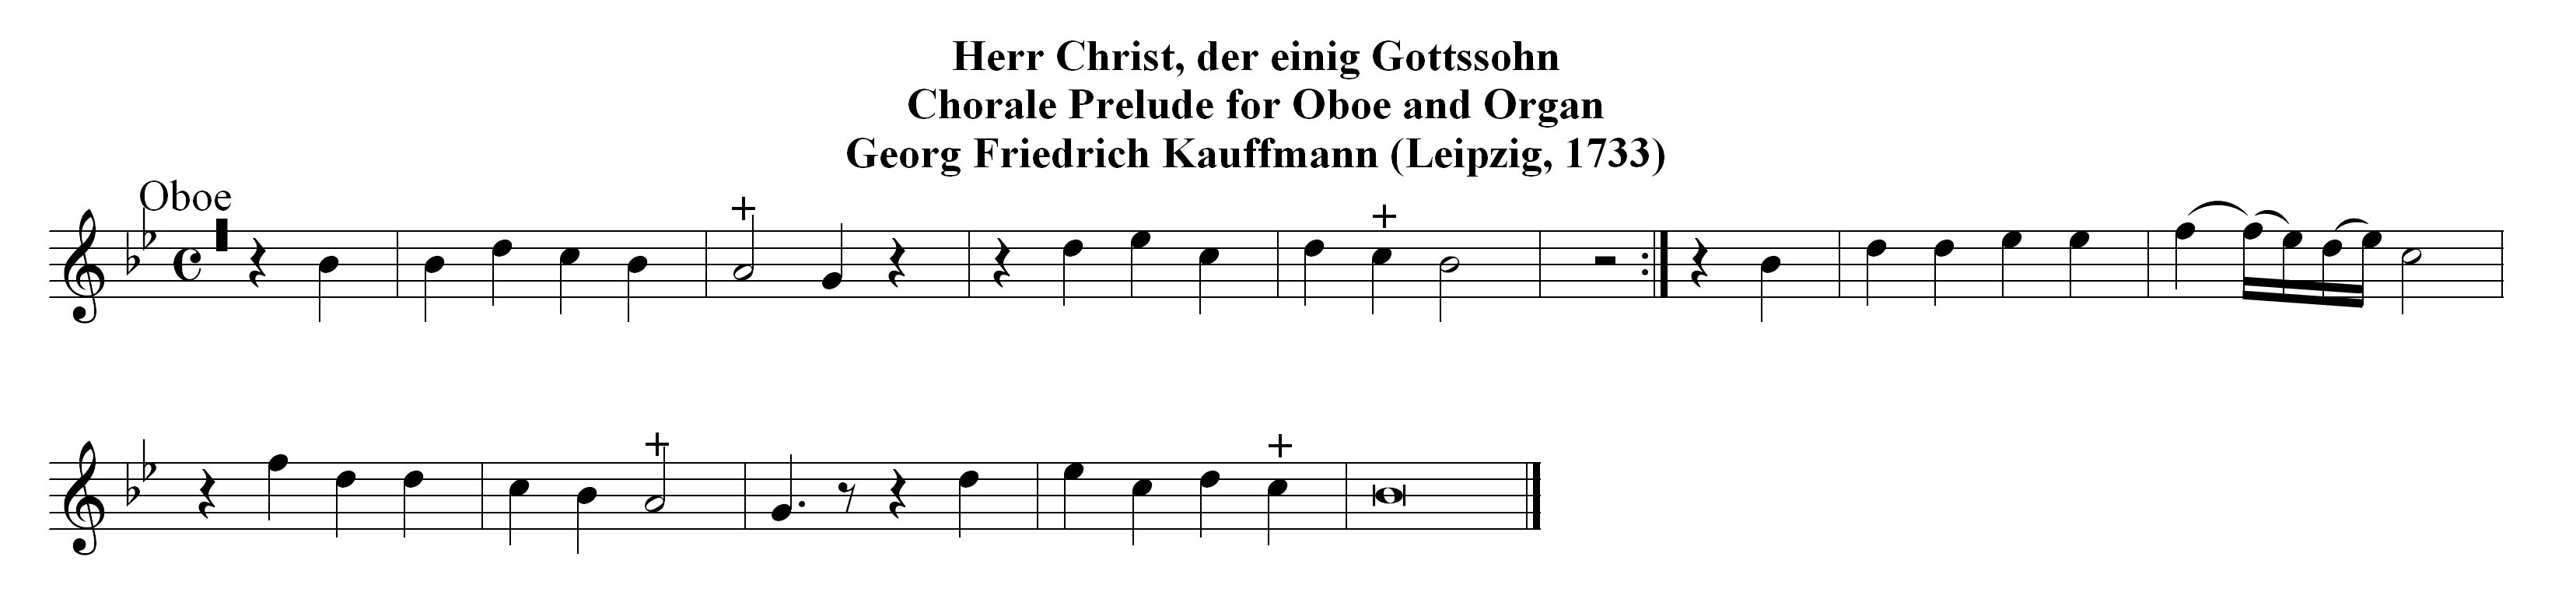 Chorale prelude for organ in G major, BuxWV 191,